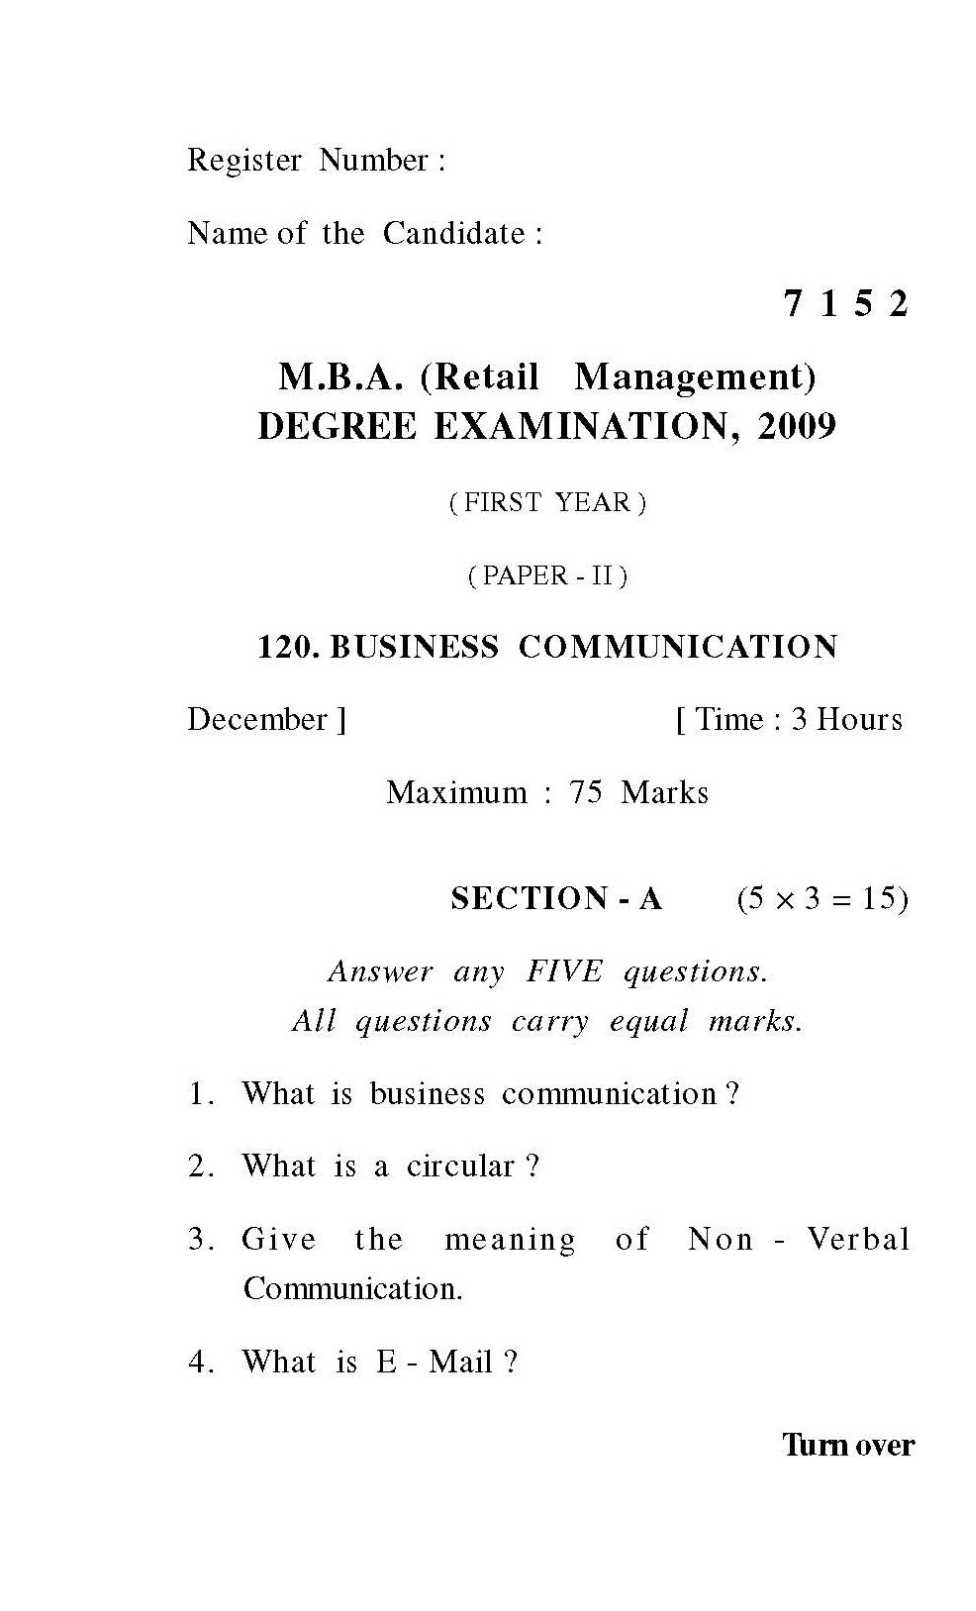 icfai university mba business law question papers The university awards the master of business  model question papers with suggested answers  the following diplomas/degree are issued by the icfai university.